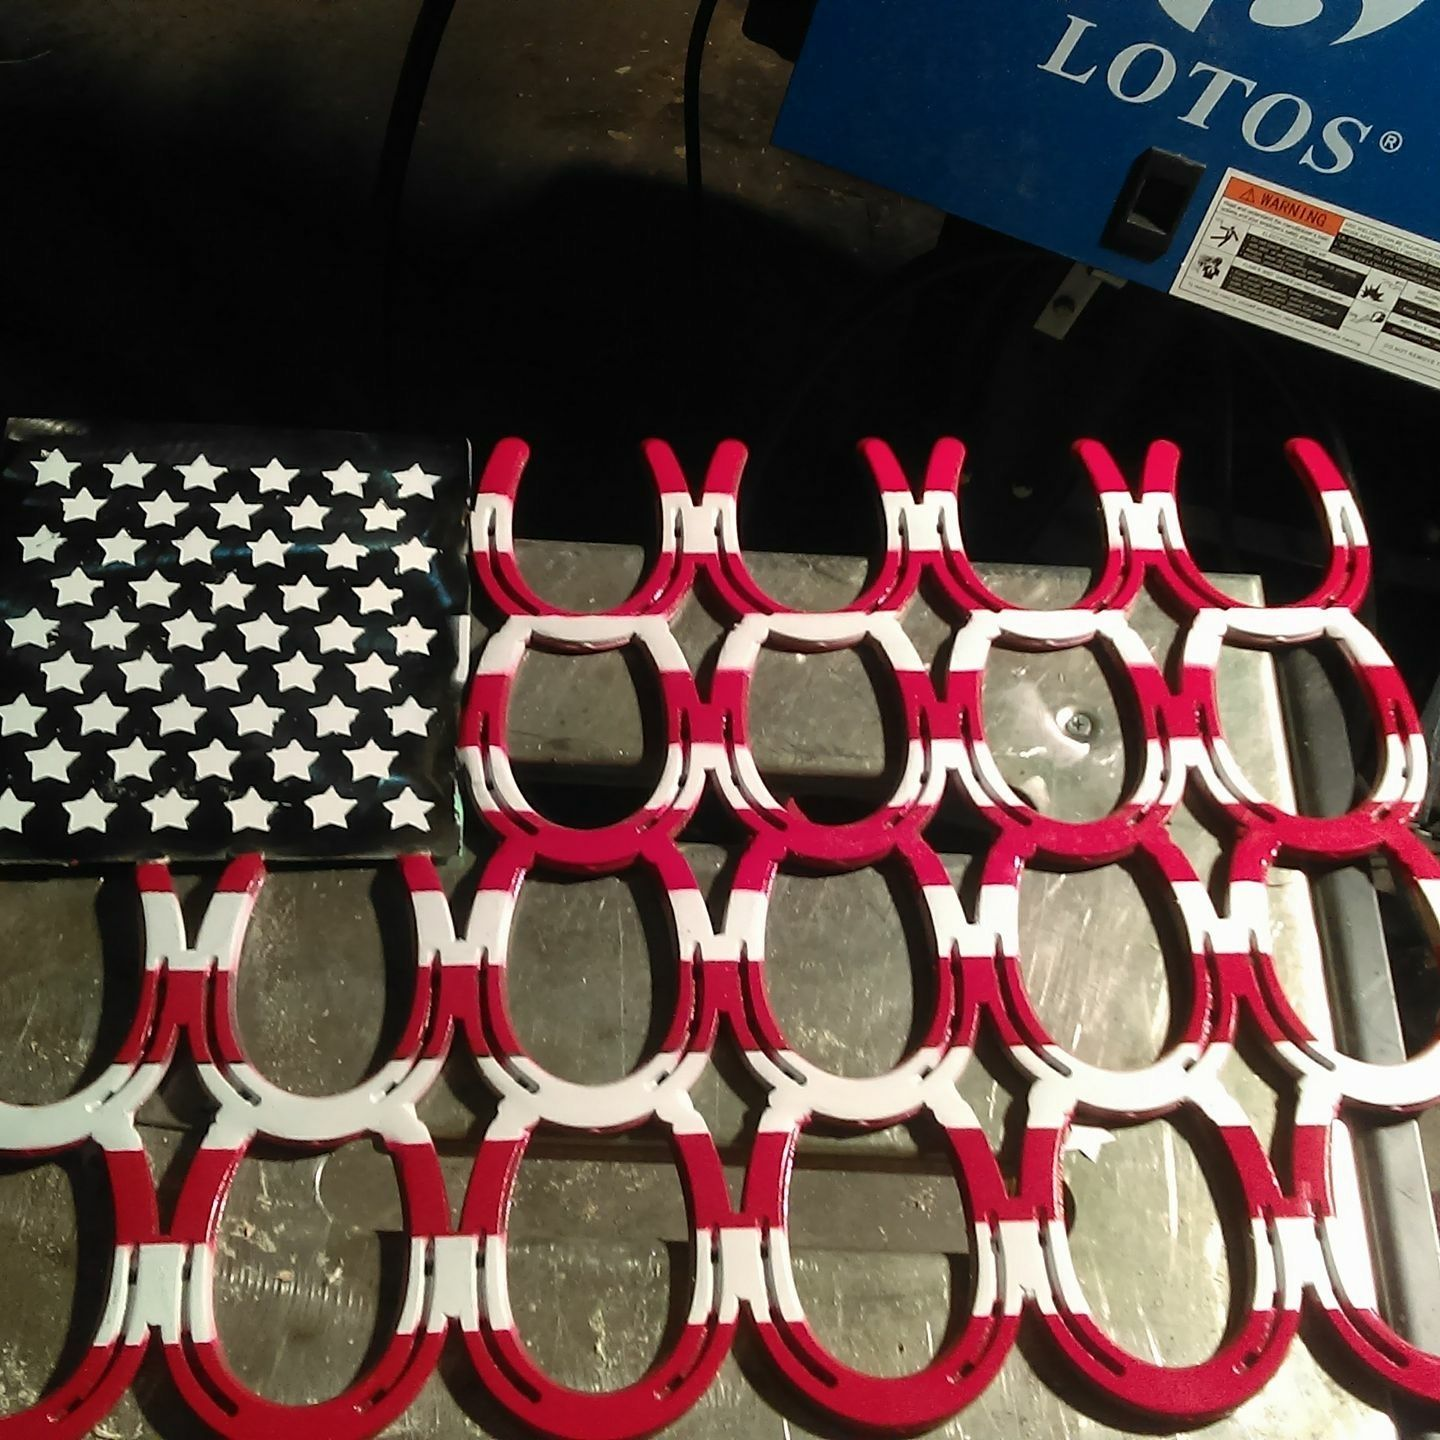 Pin by jason dougherty on welding projects pinterest for Craft welding ideas